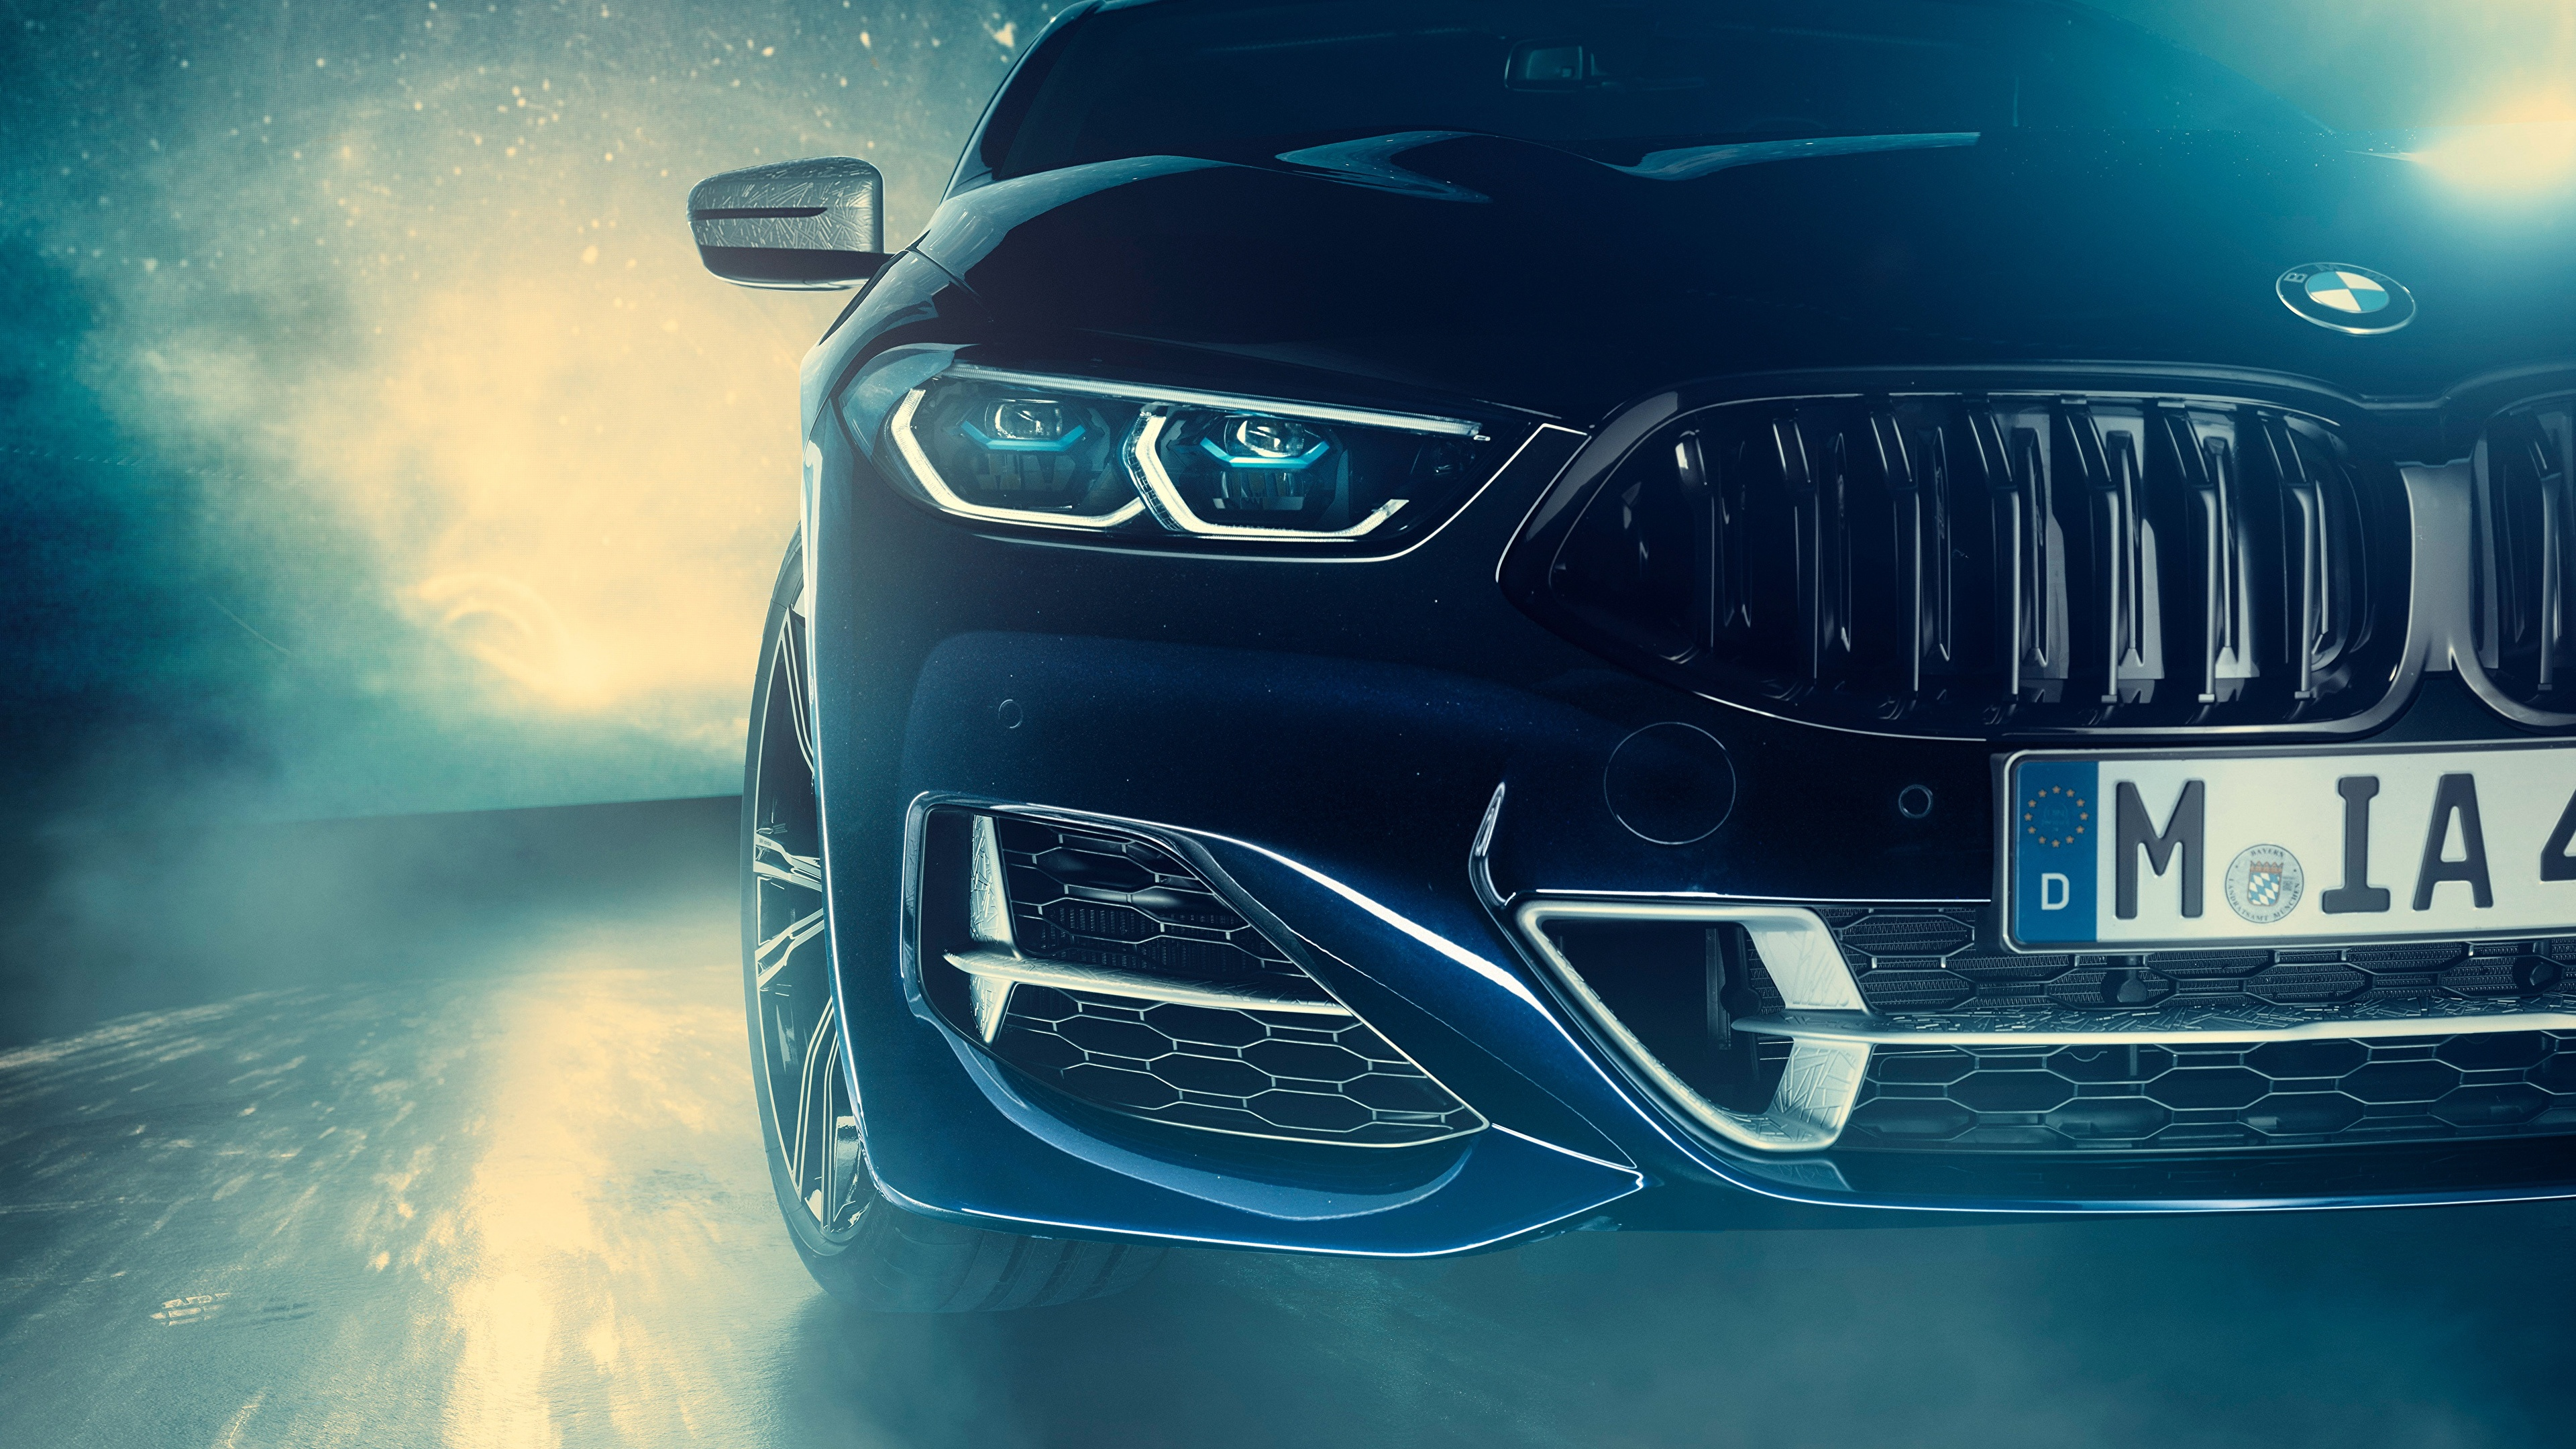 Wallpaper Bmw Individual 8 Series 2019 M850i Xdrive Night 3840x2160